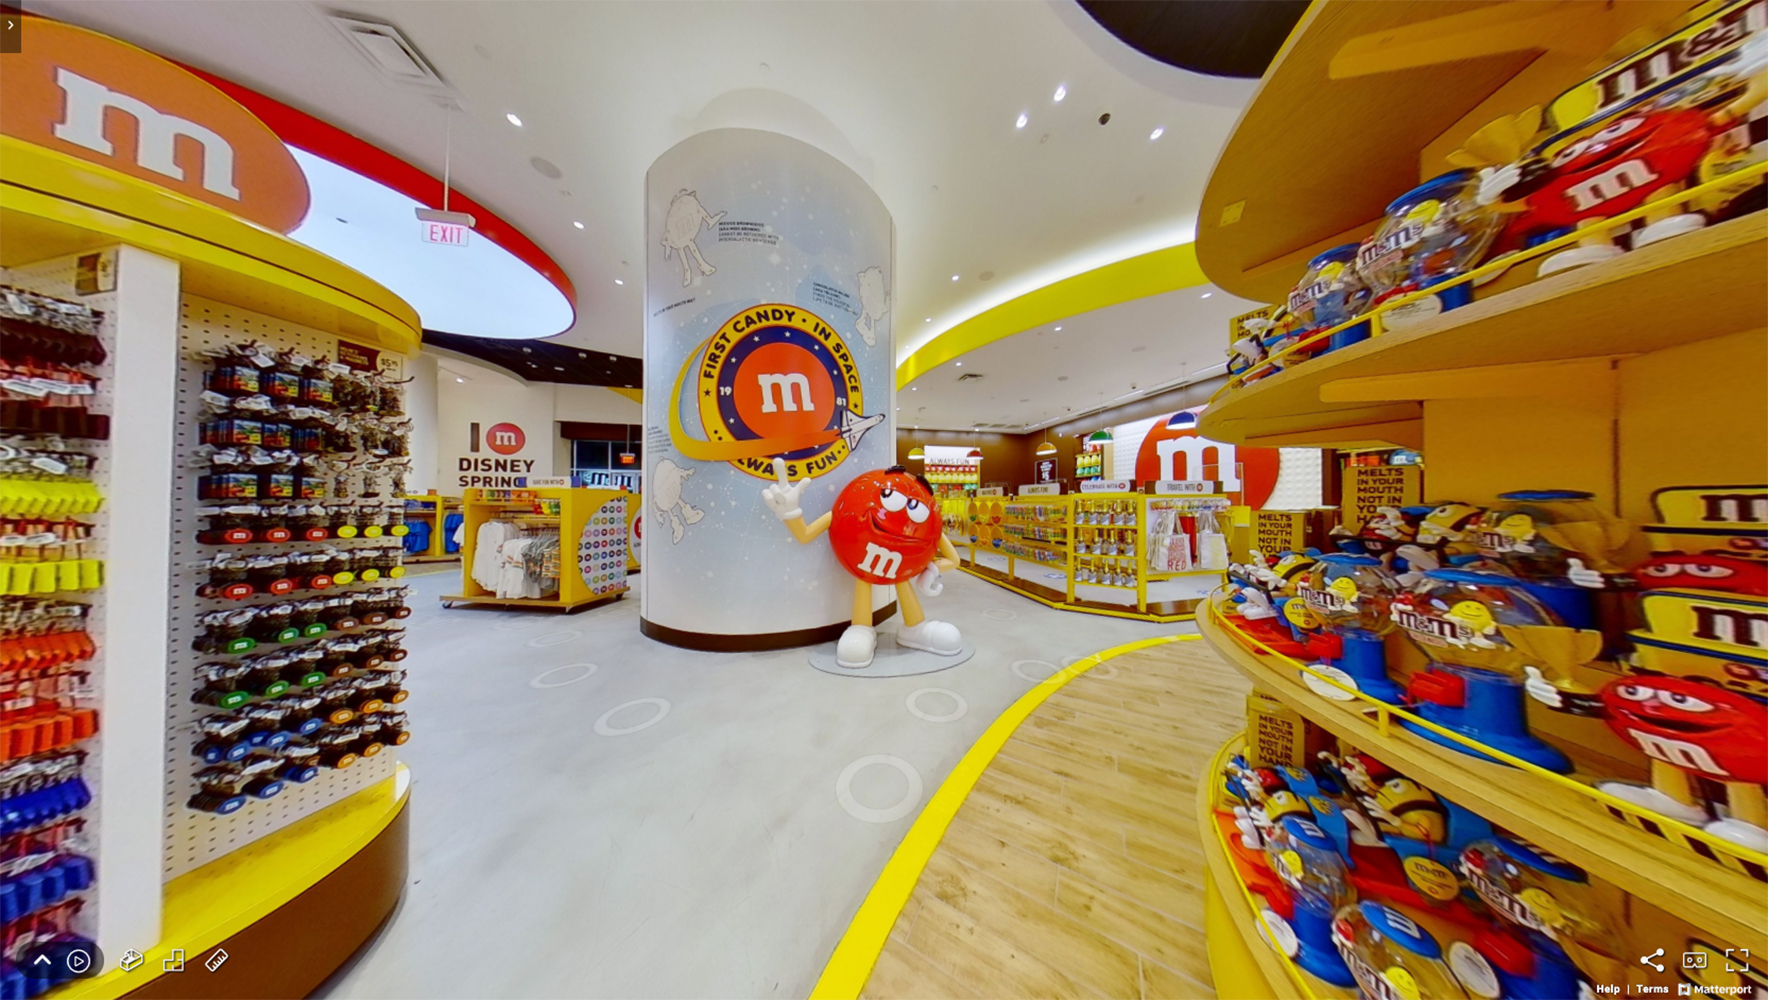 M&M's Store (Disney Springs, FL)